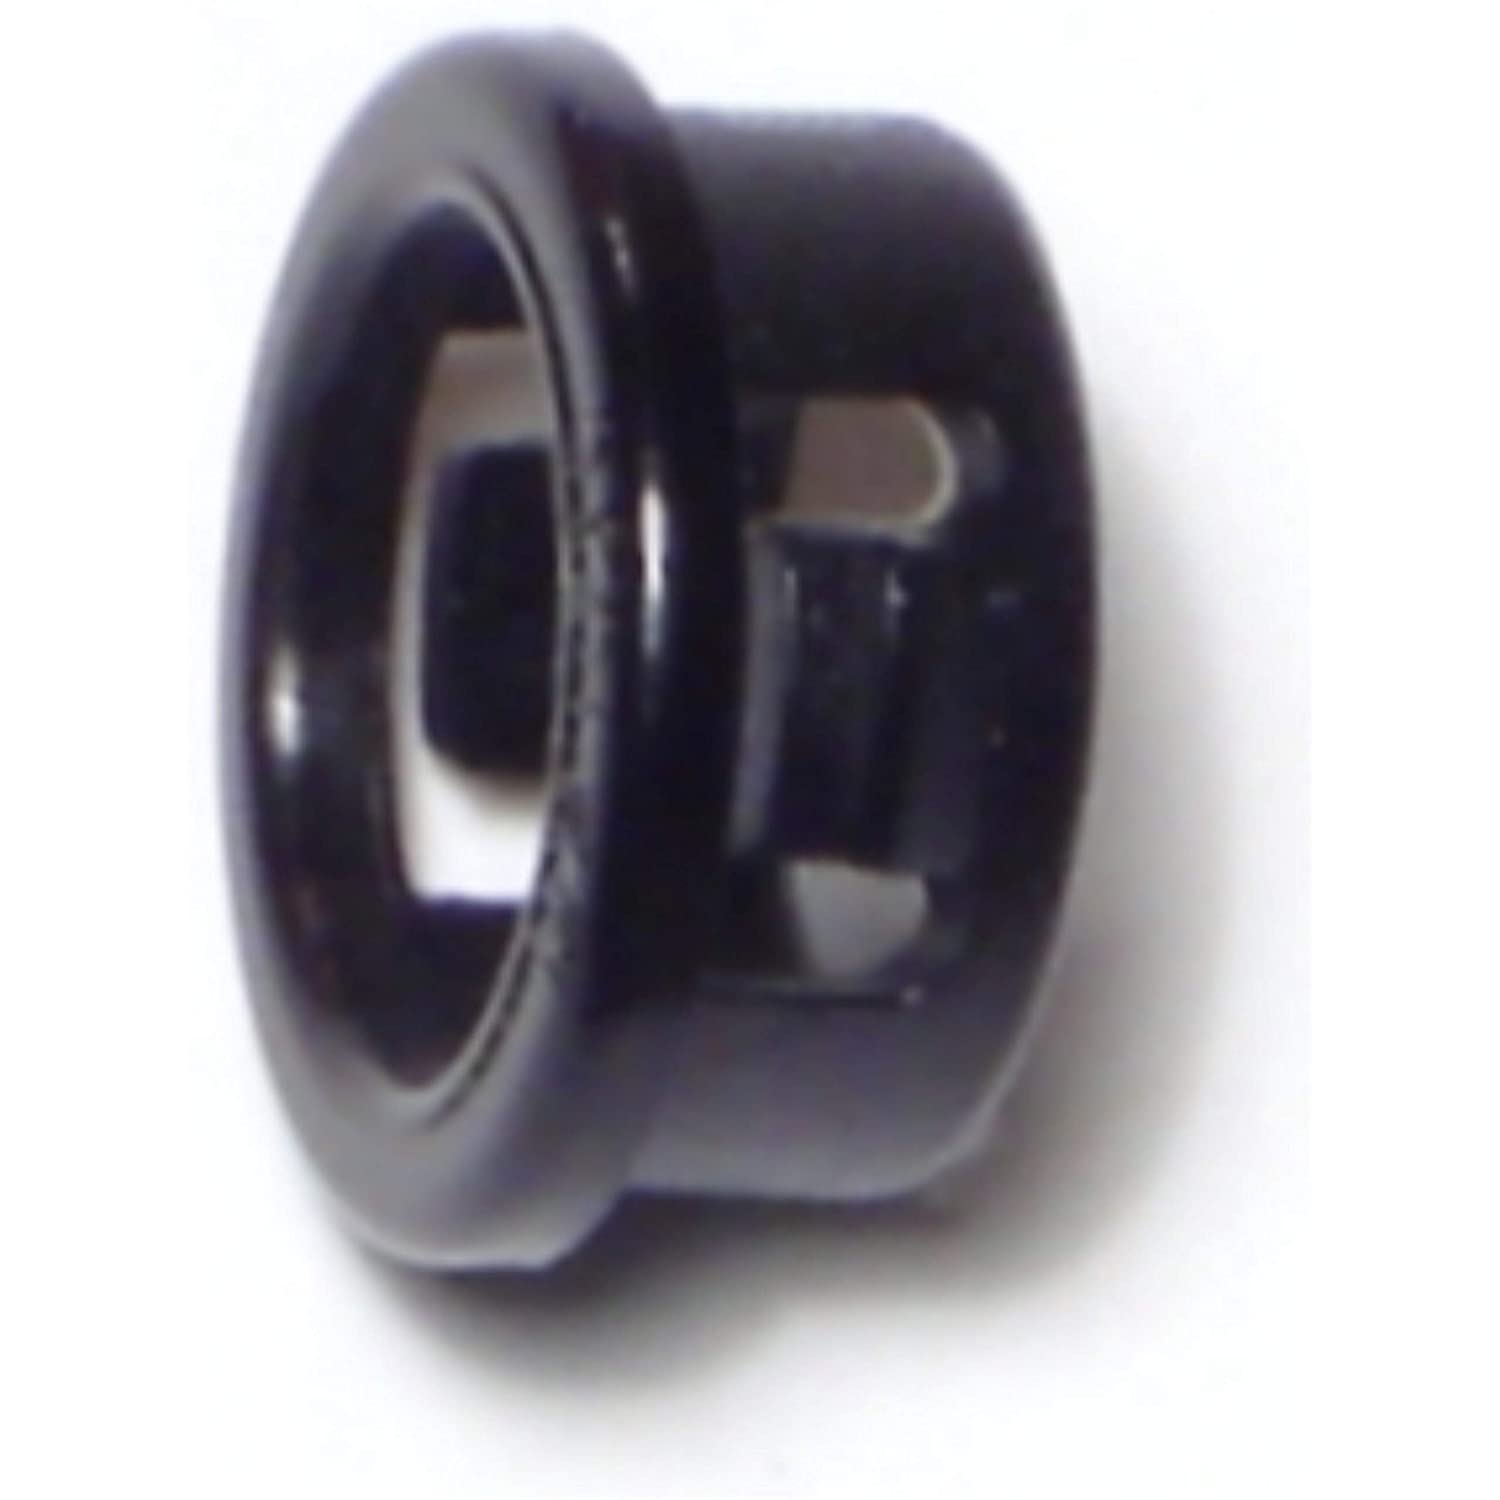 Hard-to-Find Fastener 014973170325 Snap Bushings, 1/4' ID 3/8' Hole, Piece-20 1/4 ID 3/8 Hole